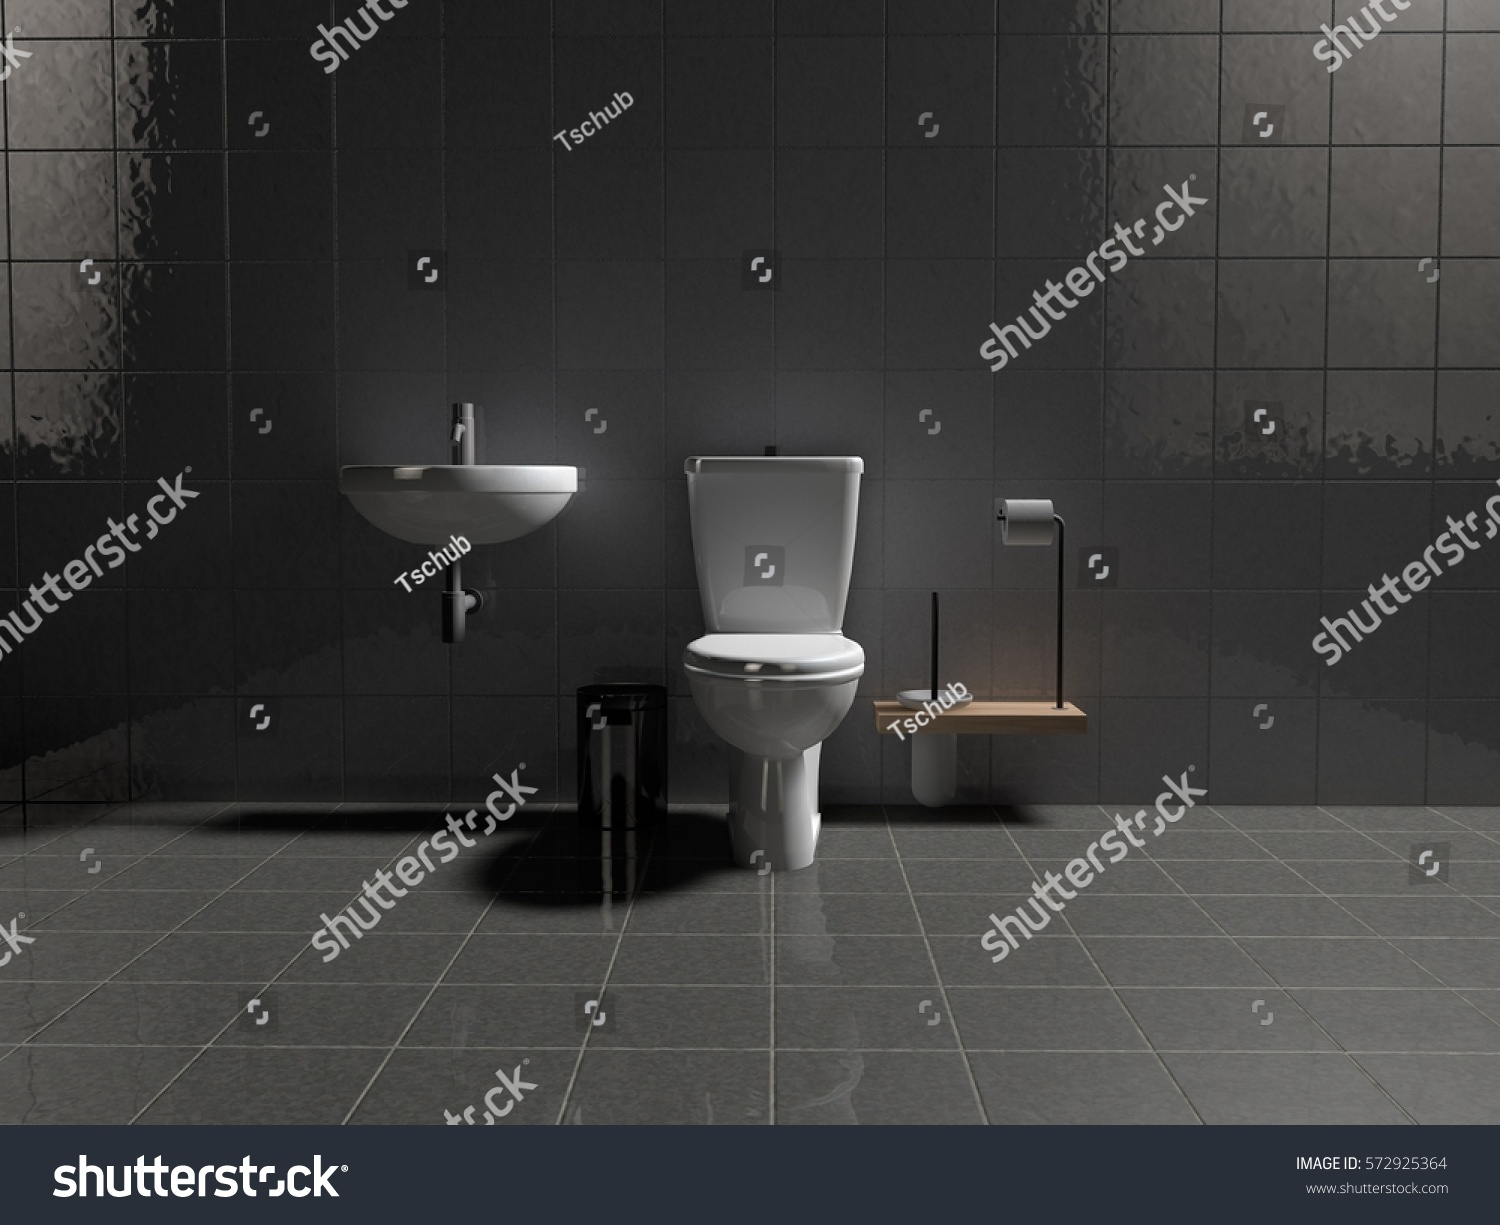 Picture Toilets Sinks Buckets Toilet Paper Stock Illustration ...